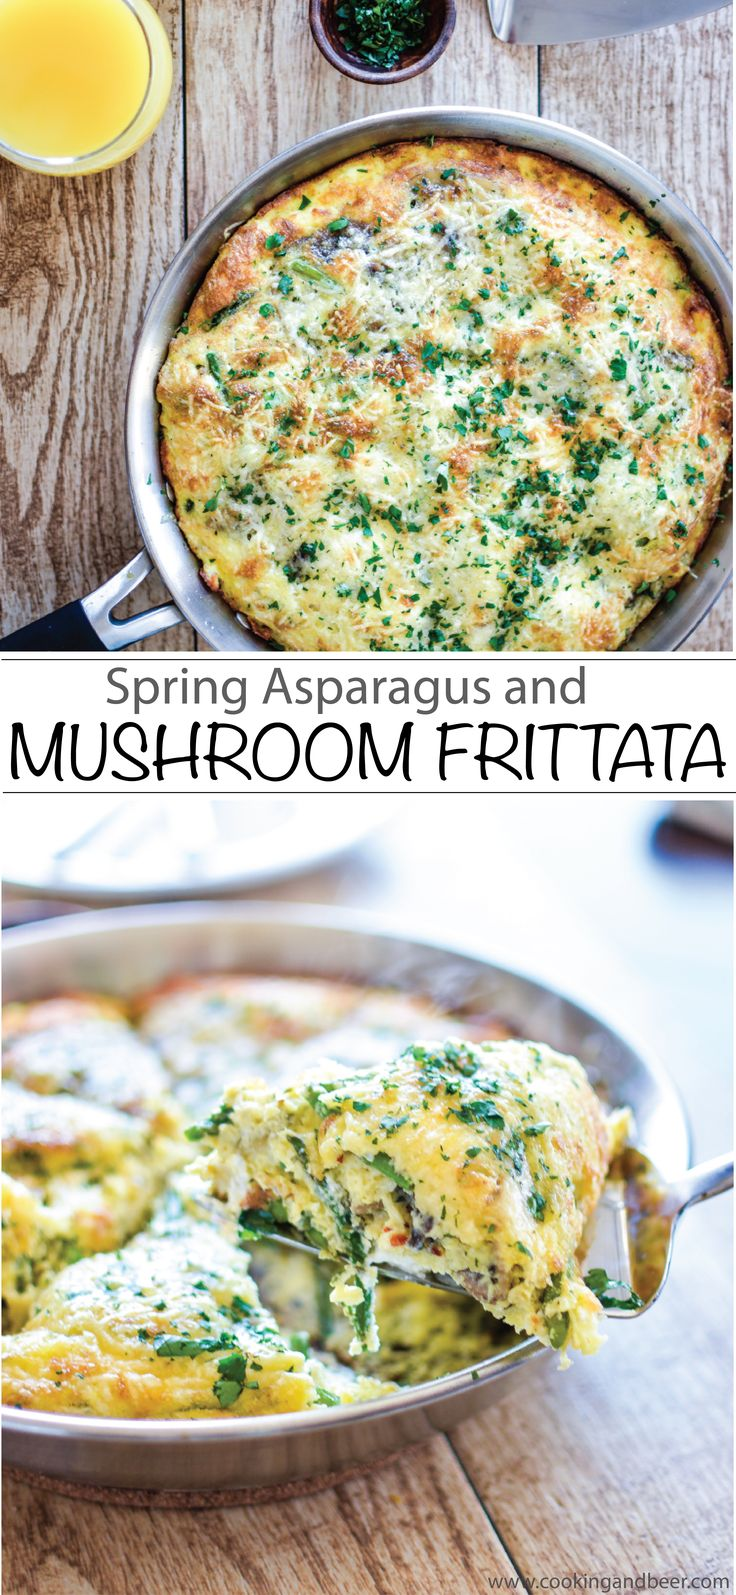 Spring Asparagus and Mushroom Frittata Recipe: a must-have for this year's Easter brunch menu! | www.cookingandbeer.com